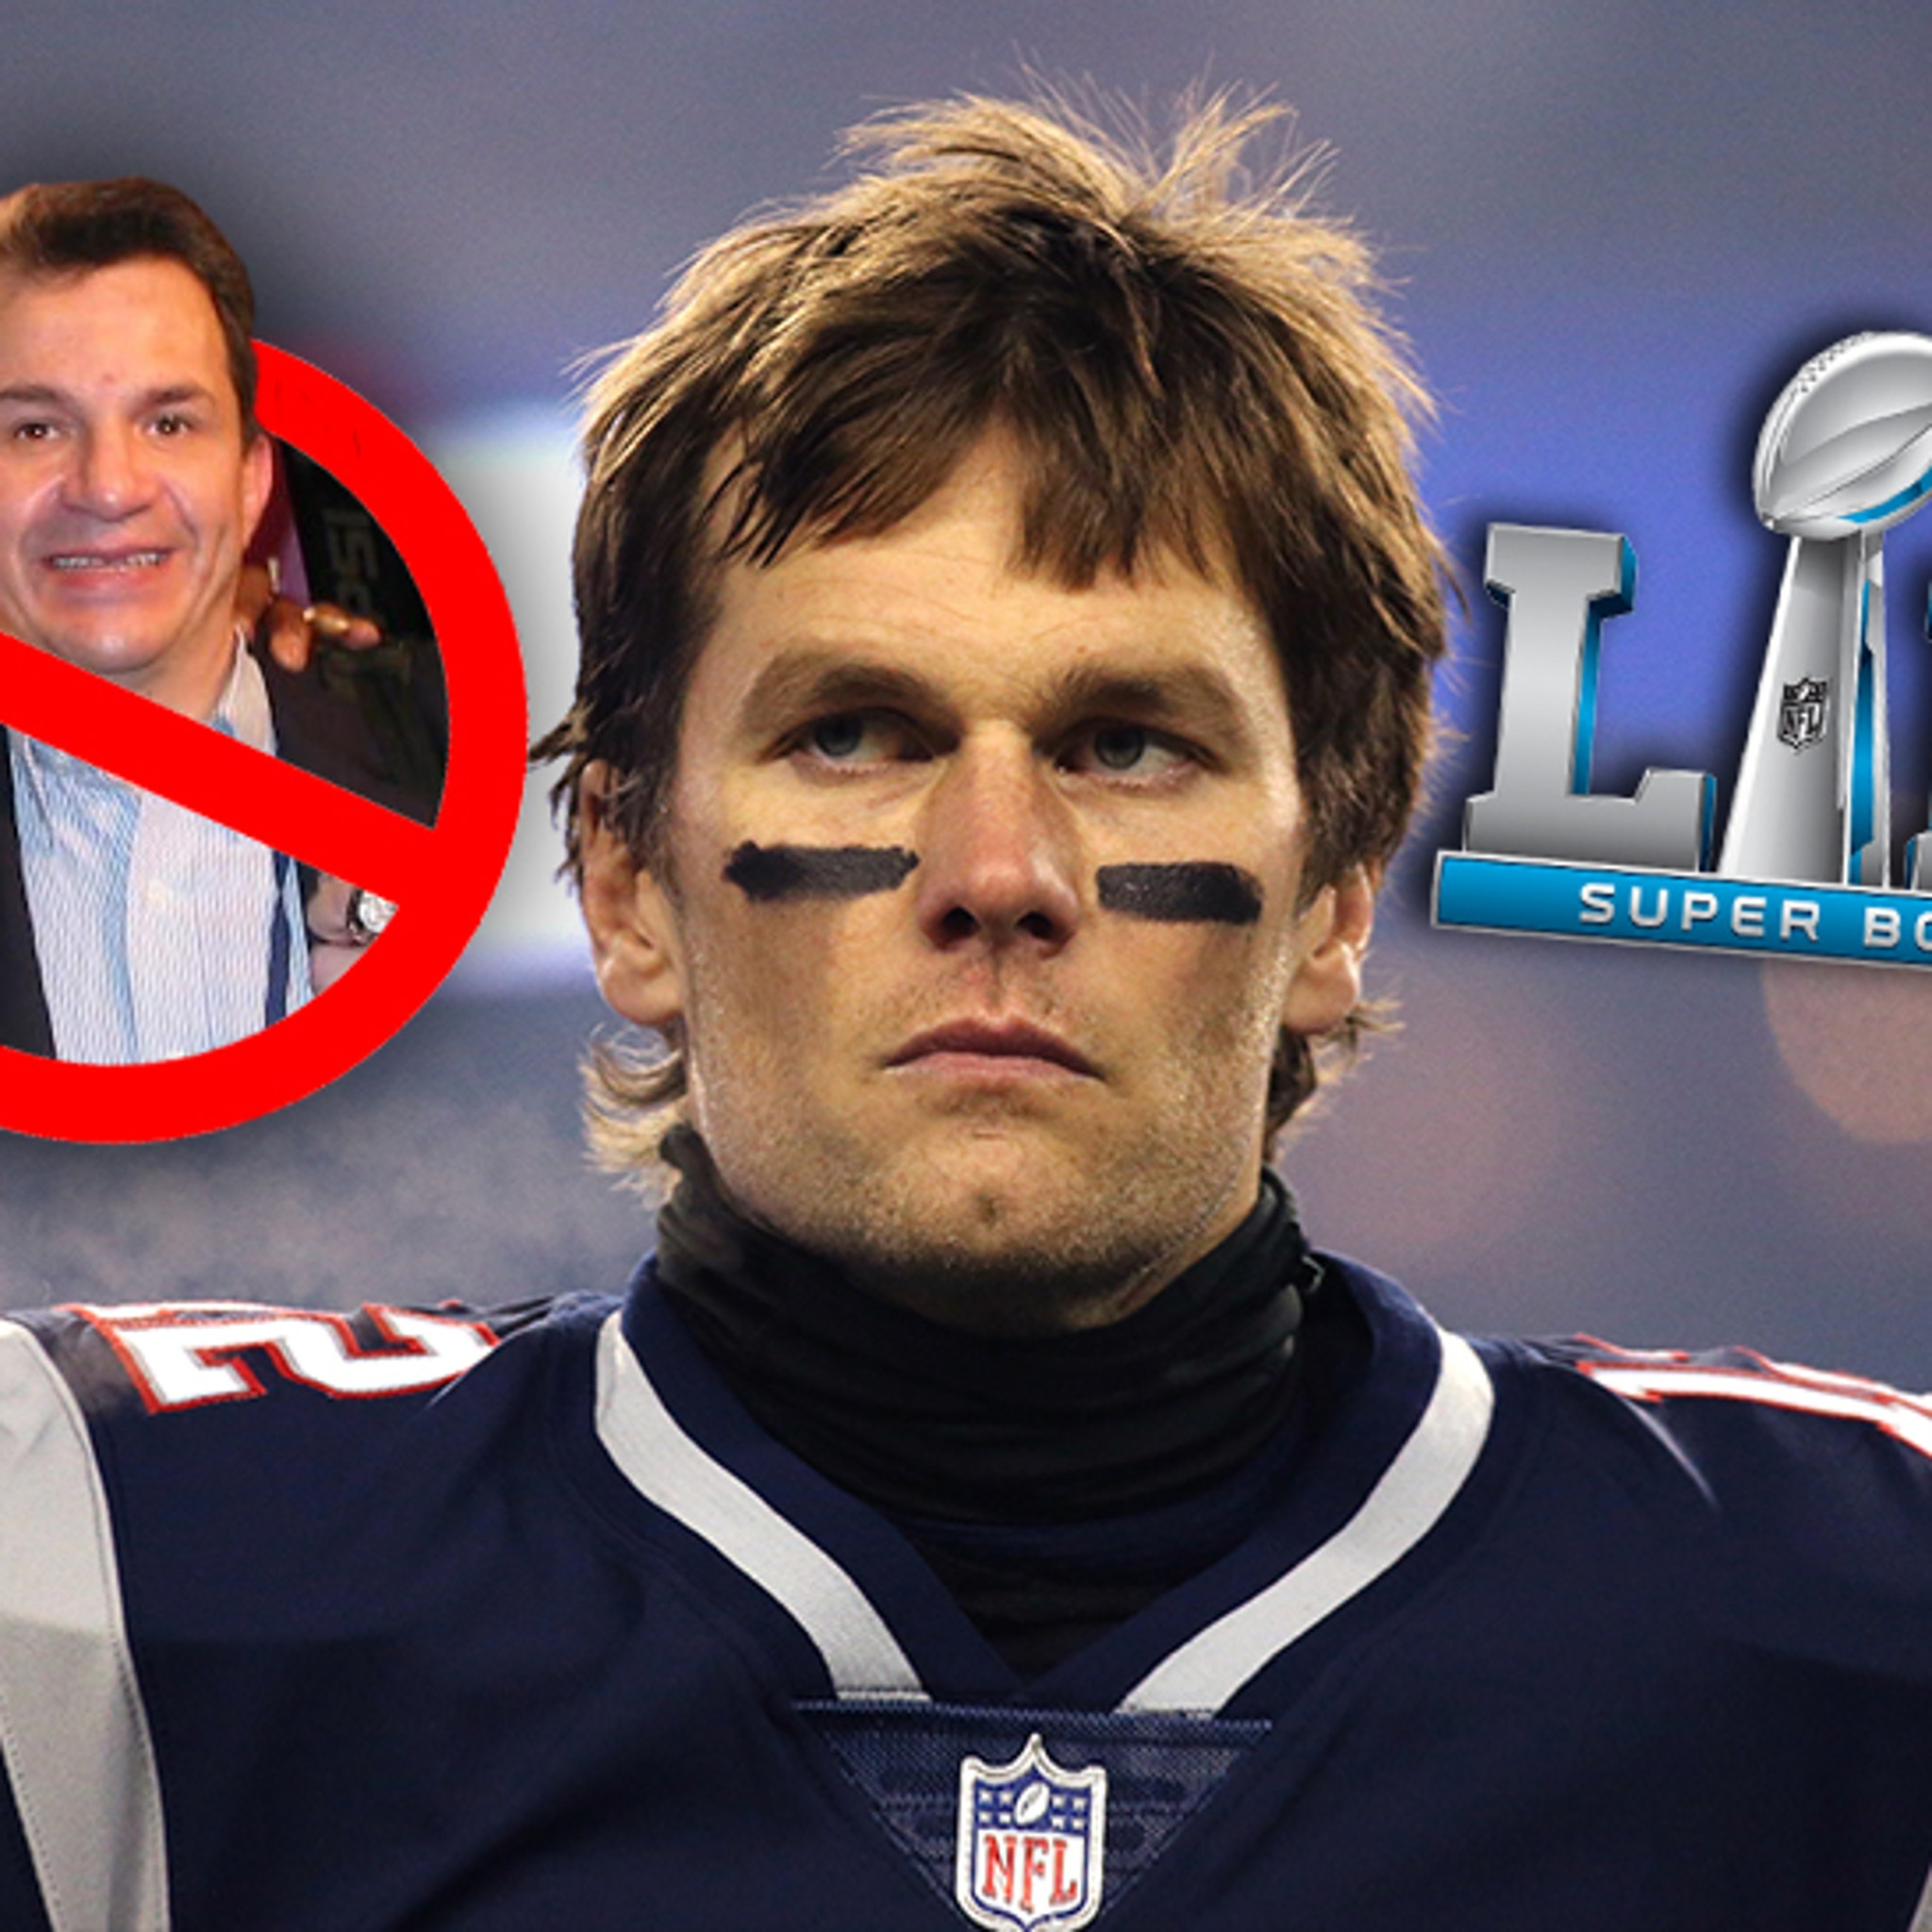 Tom Brady's Jersey Will Be On Lockdown at Super Bowl LII